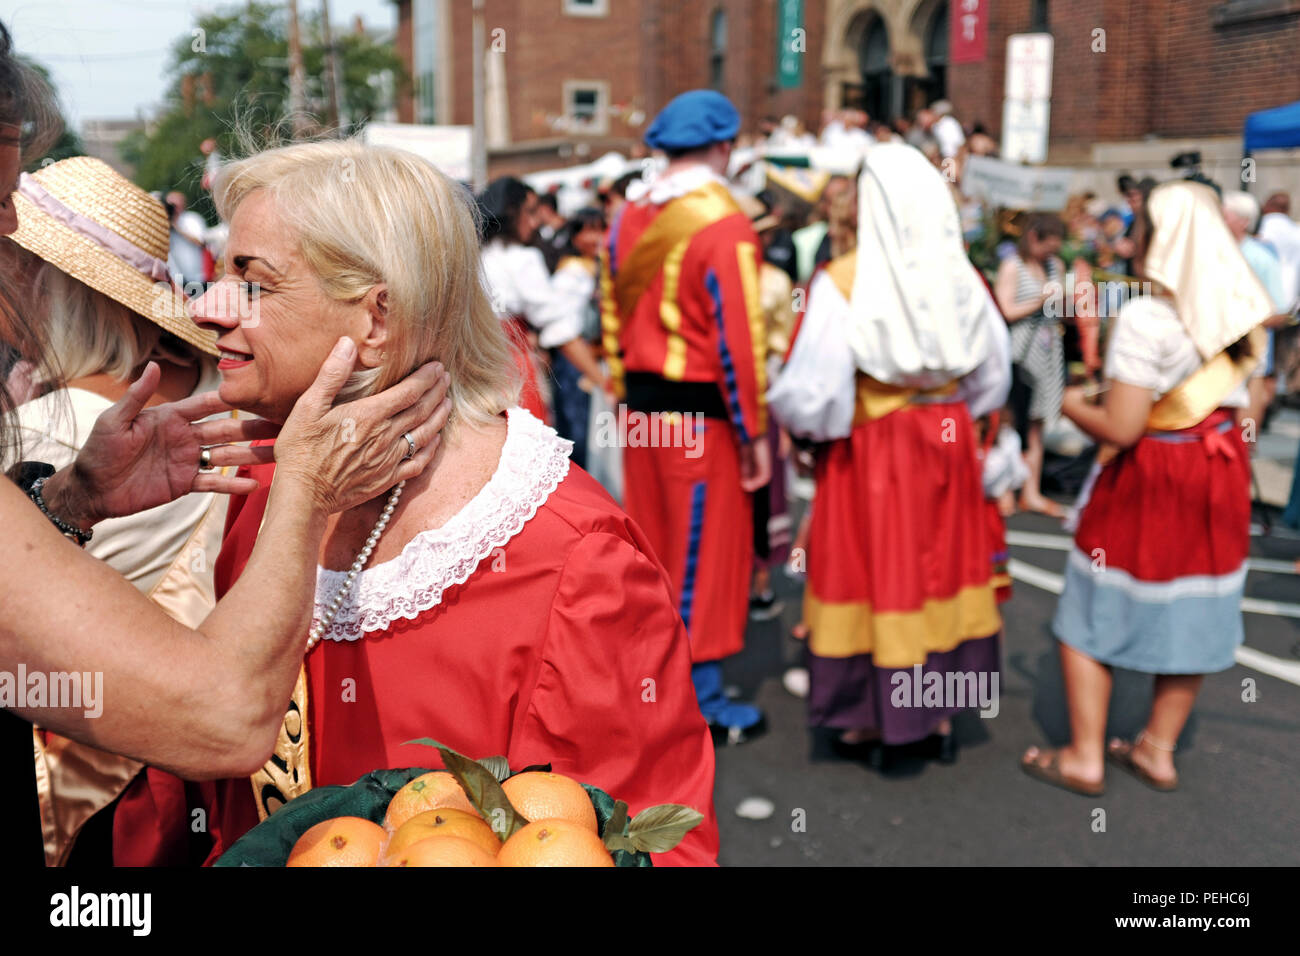 Sicilian woman stock photos sicilian woman stock images alamy a woman receives an italian greeting outside the holy rosary church where she is waiting to m4hsunfo